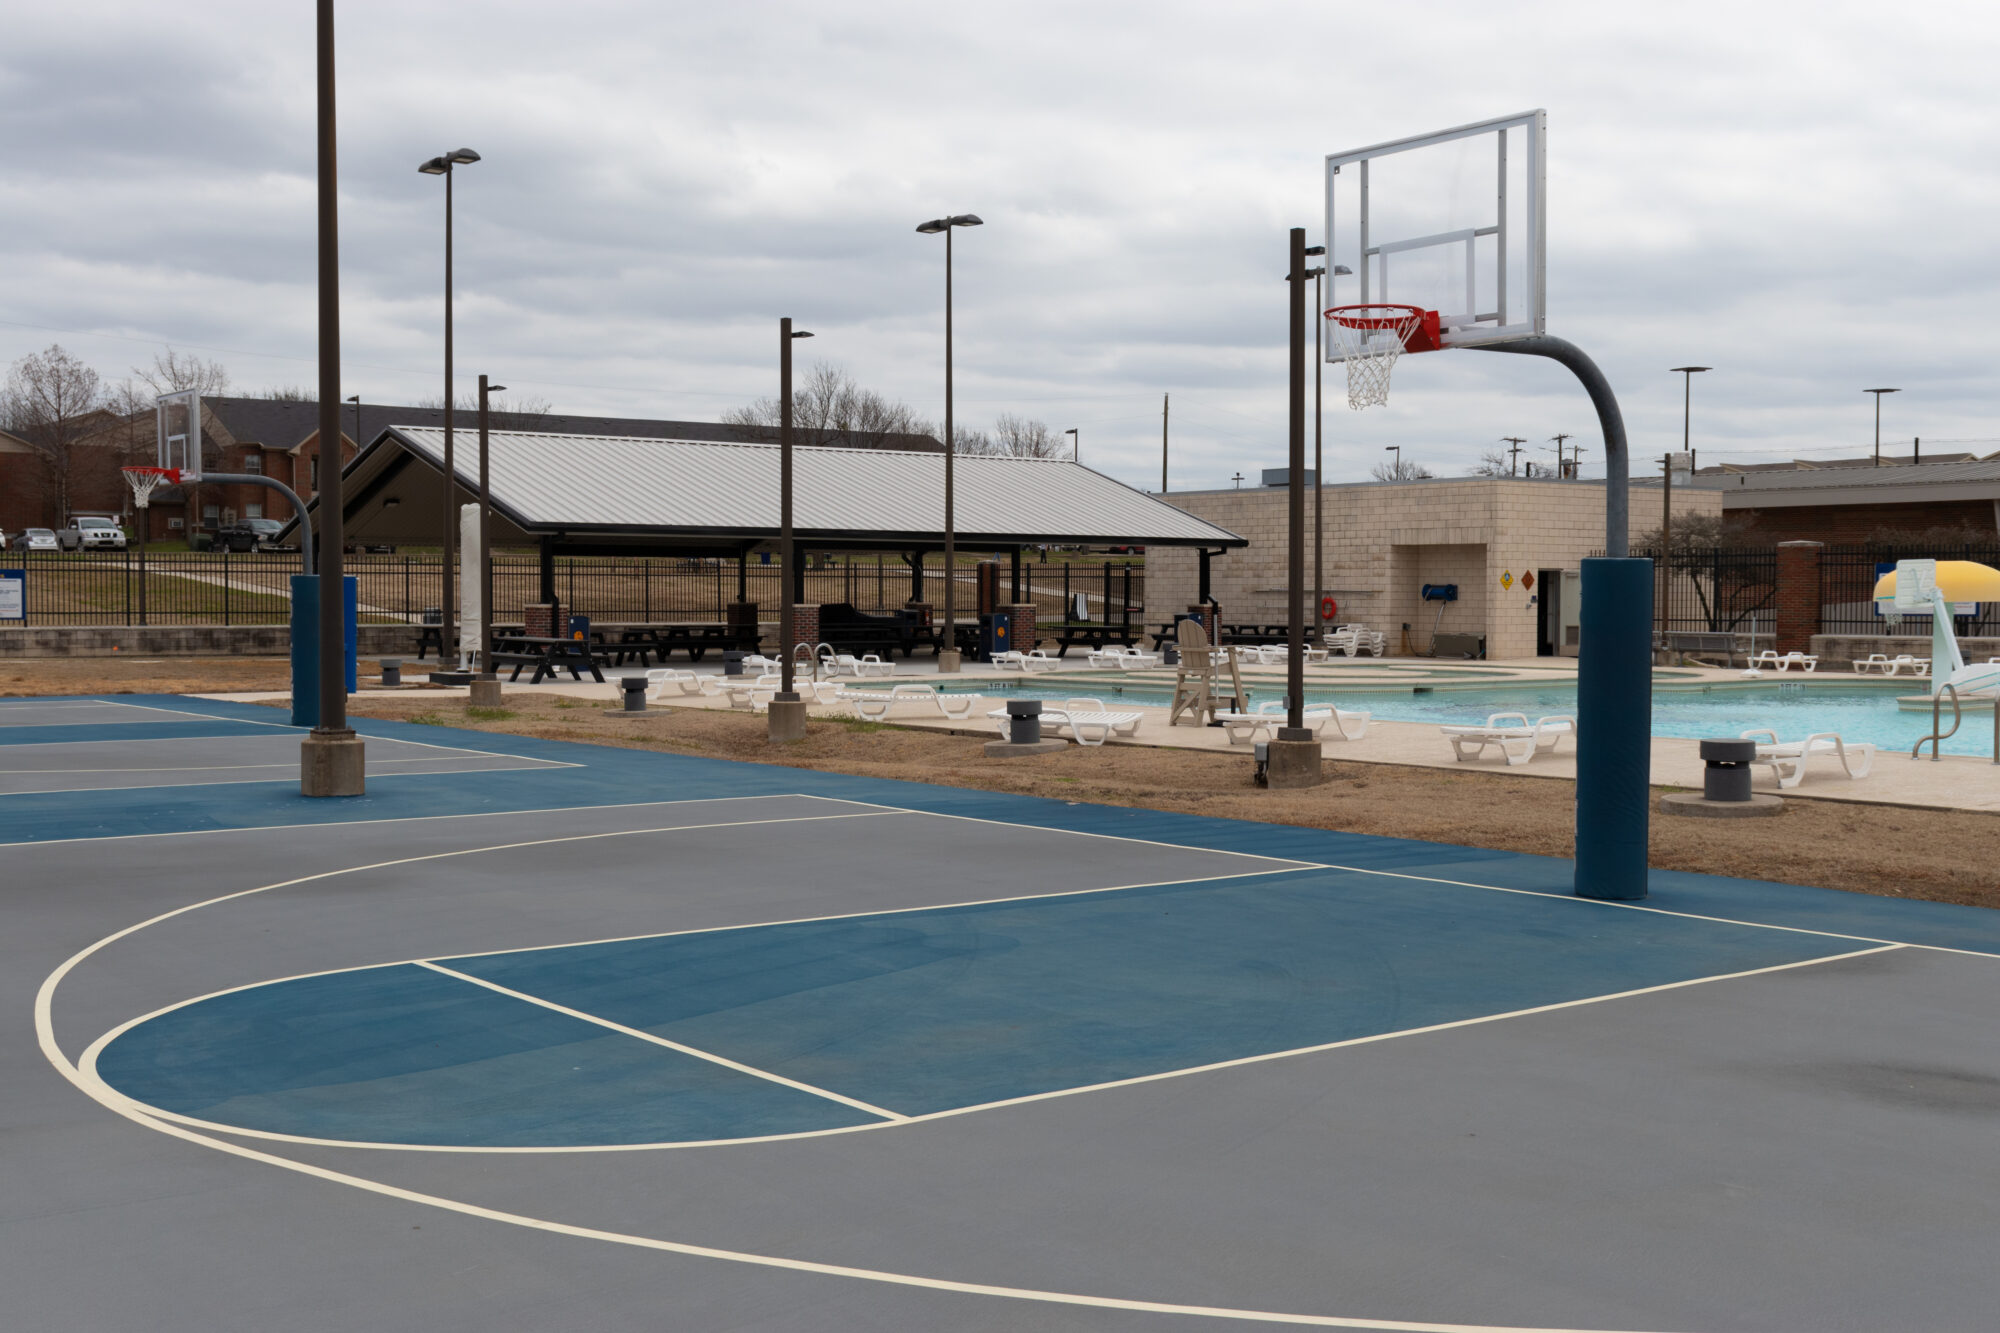 Great OutRoars Basketball court